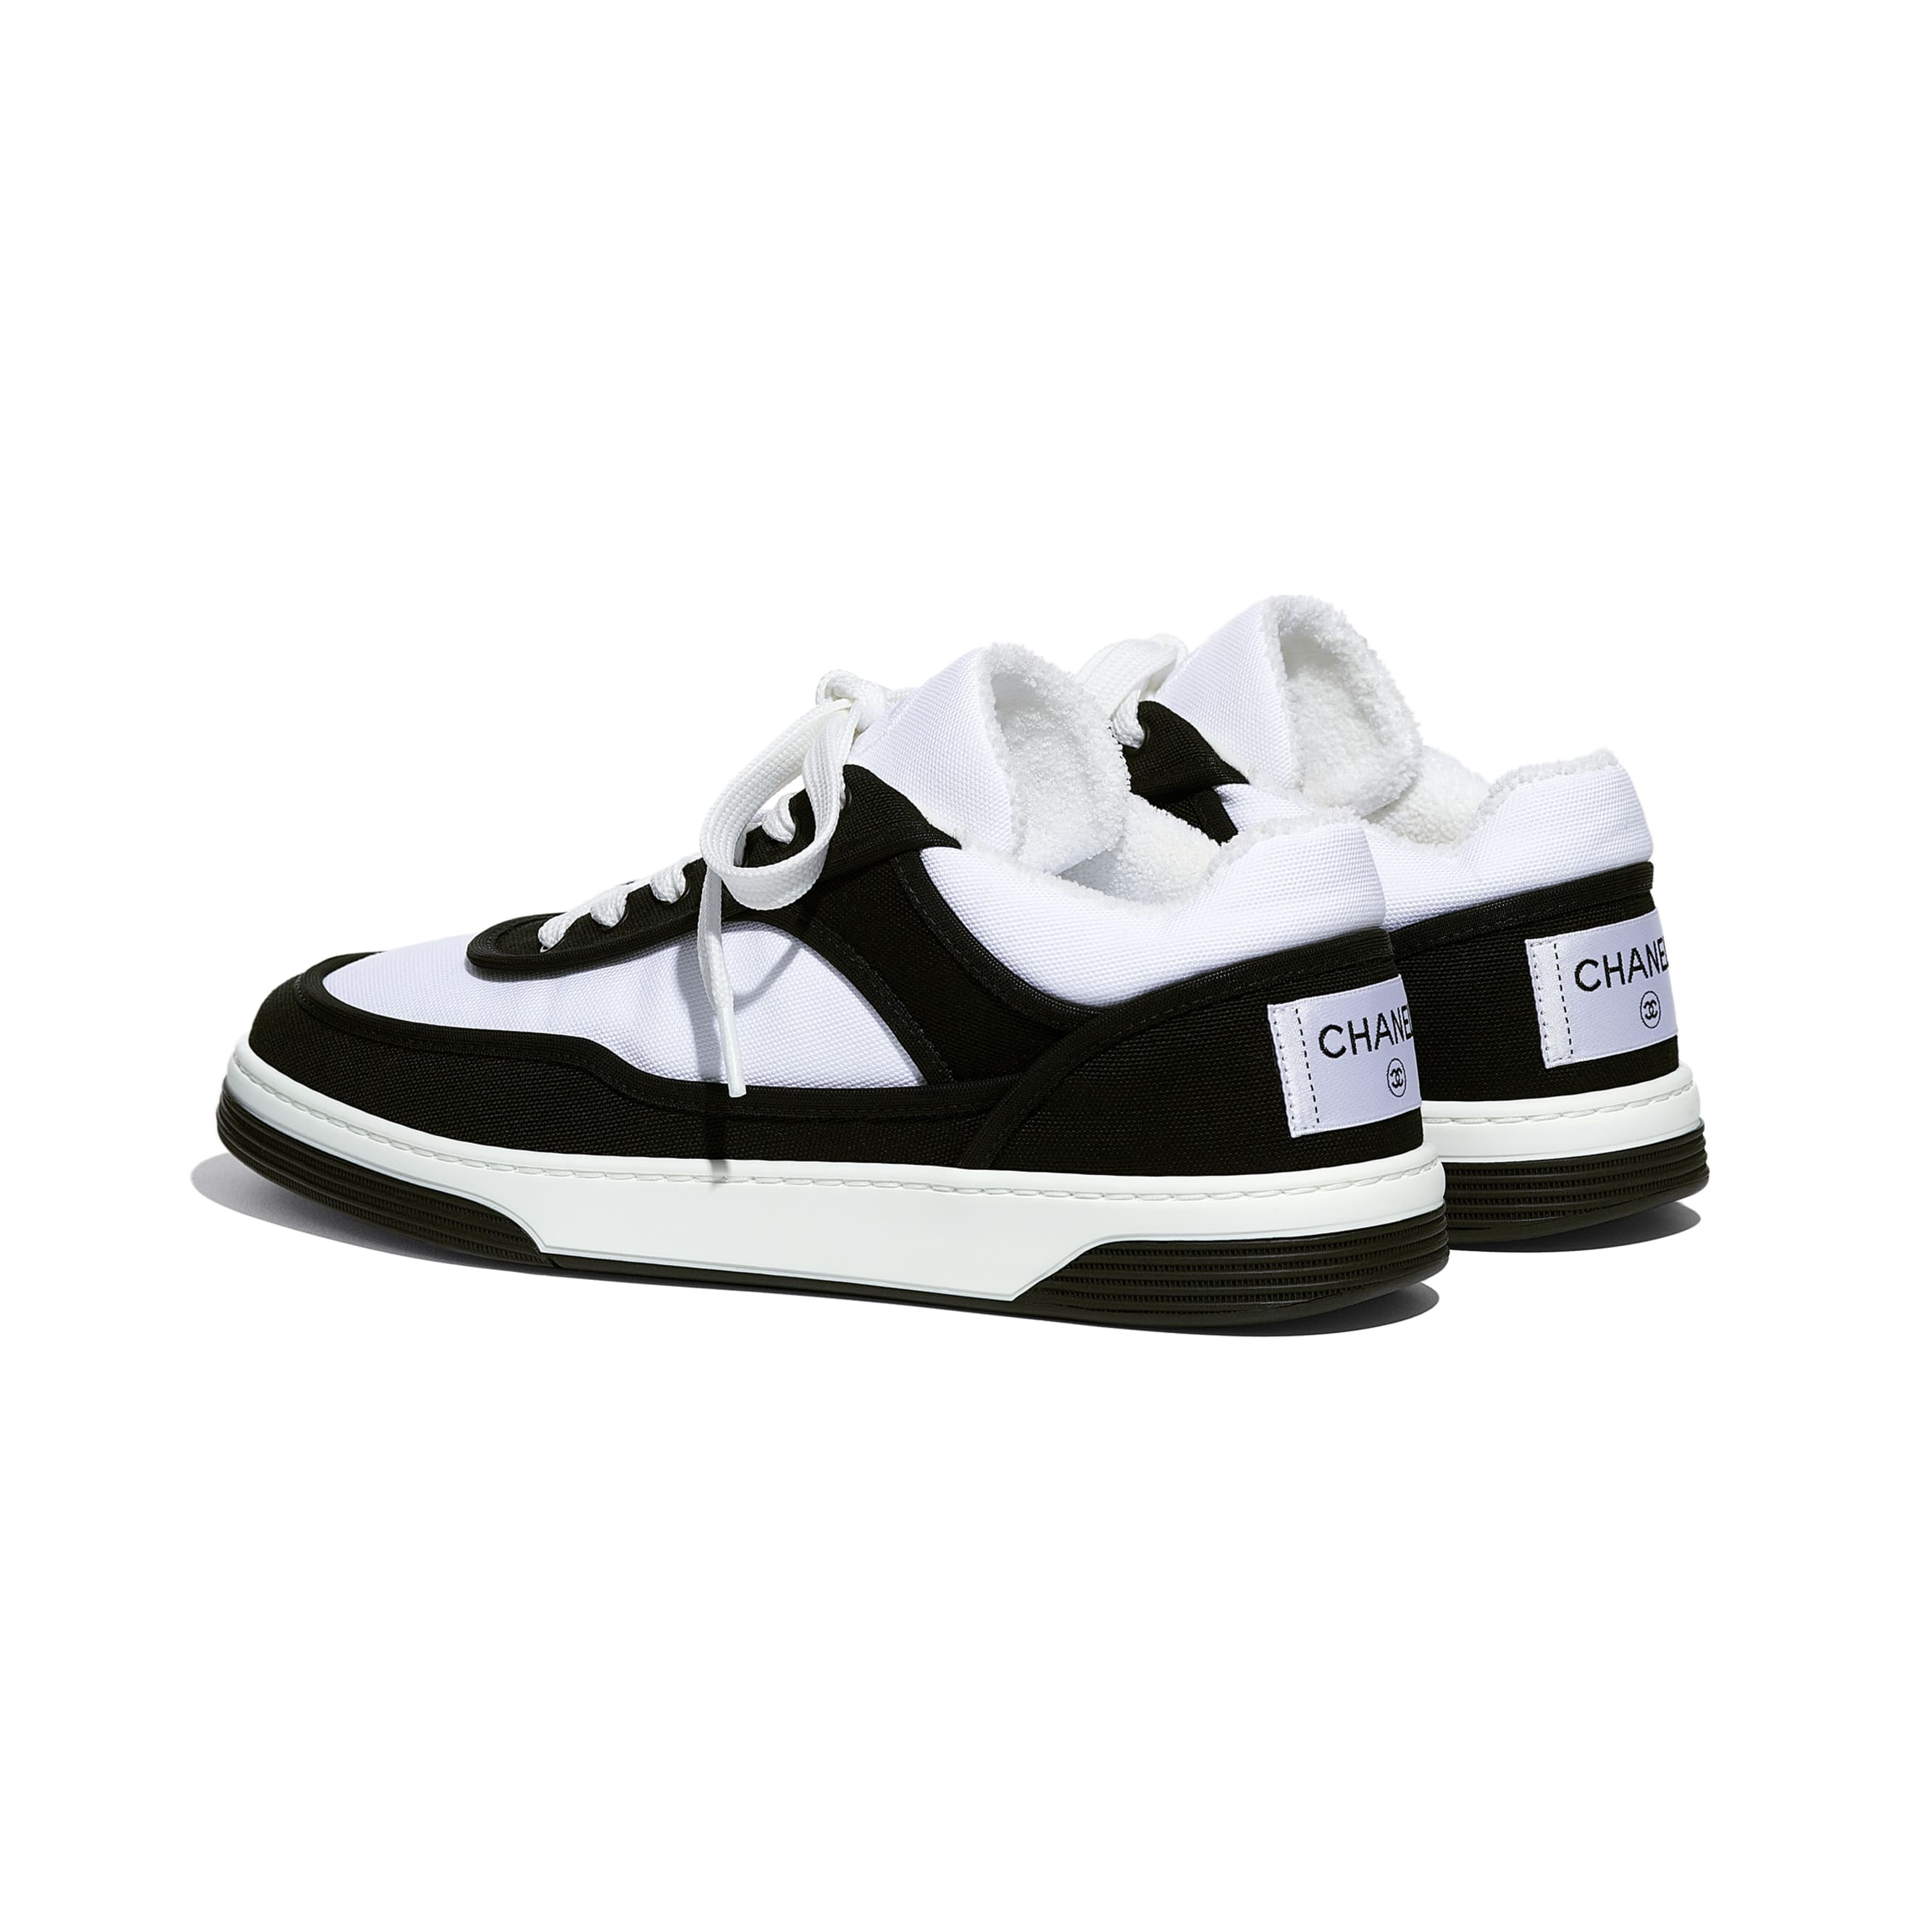 Trainers - Black & White - Fabric - CHANEL - Other view - see standard sized version